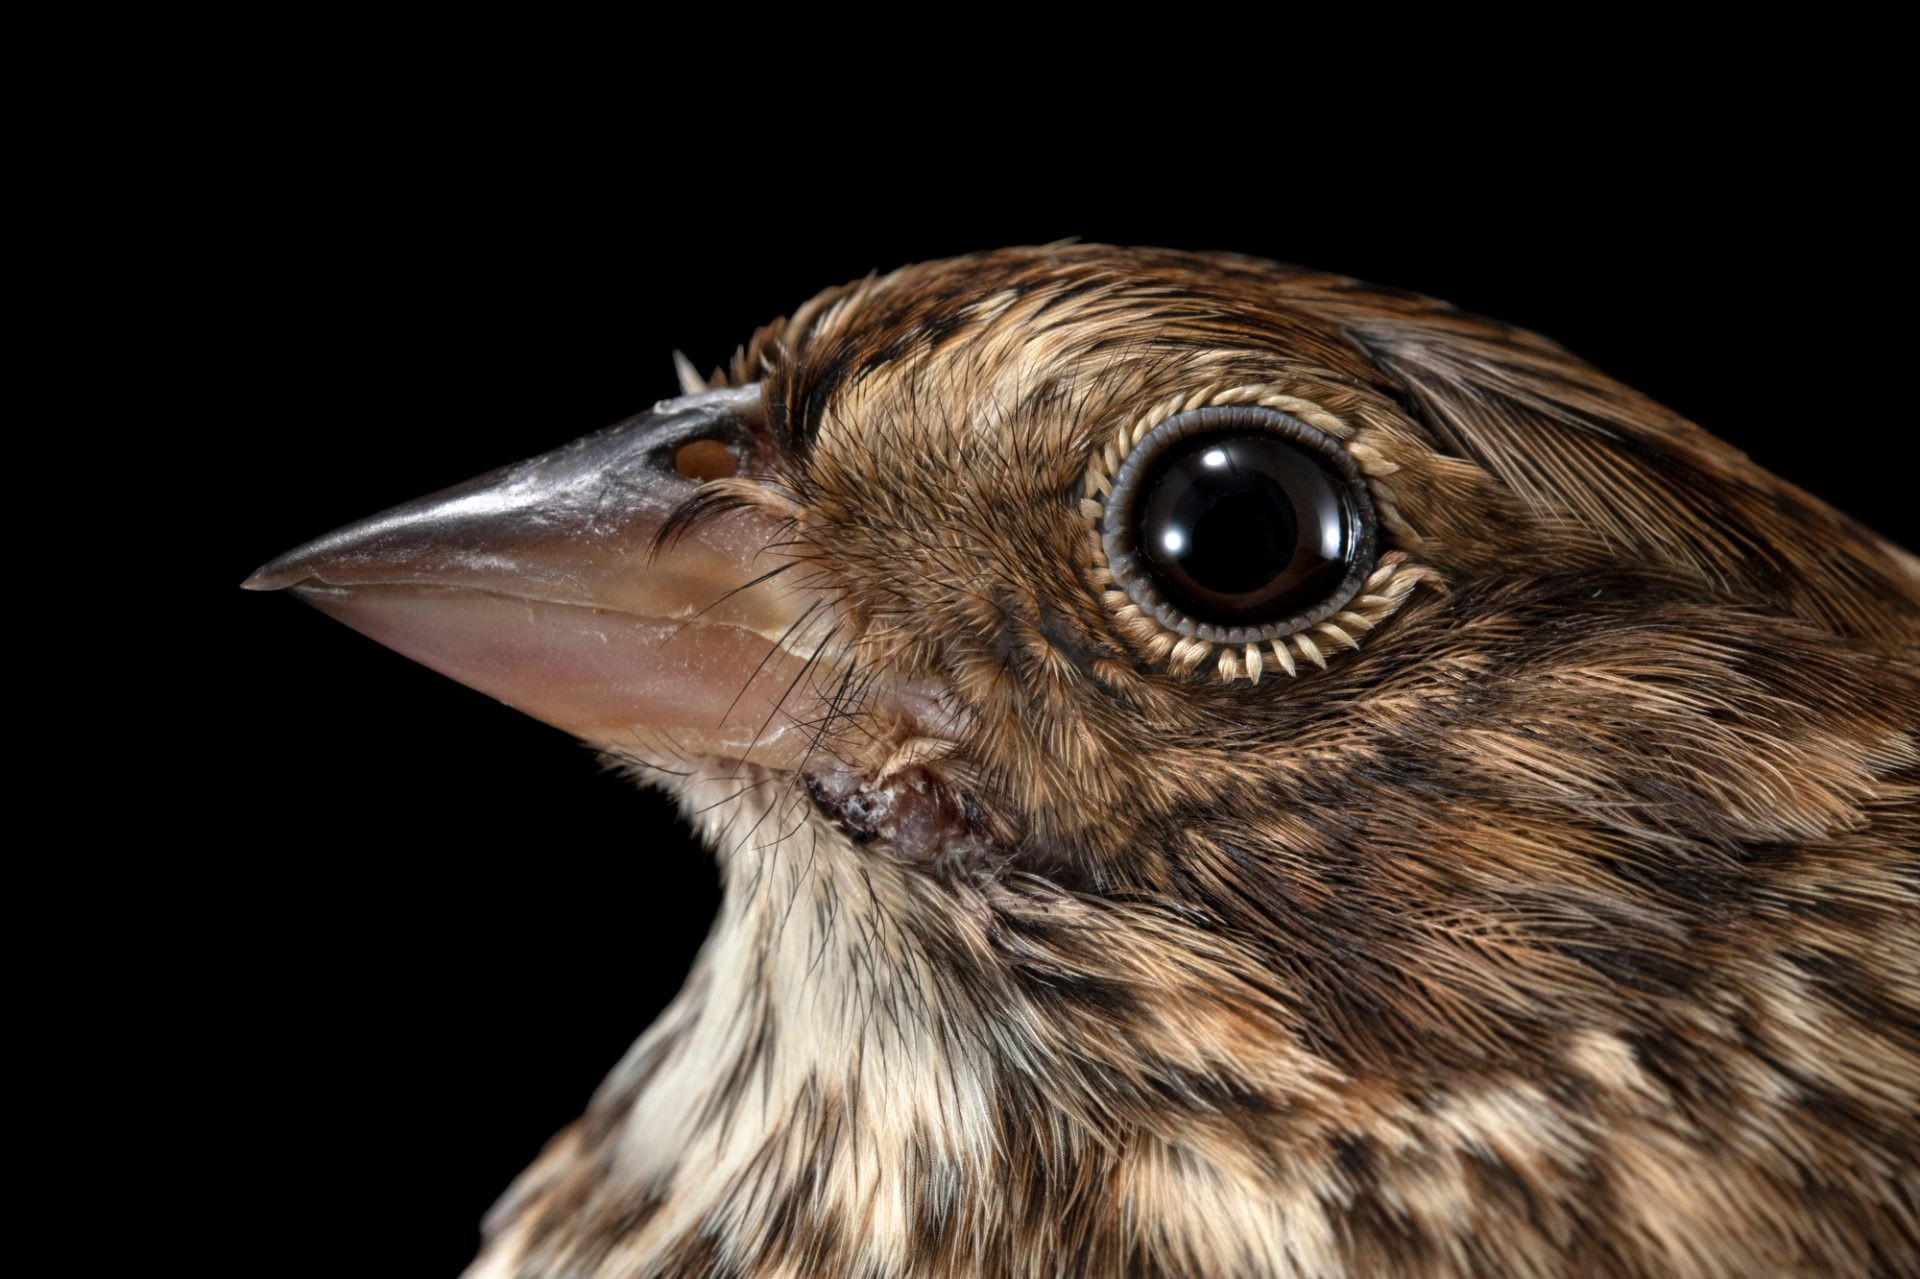 Photo: A vesper sparrow (Pooecetes gramineus) at the Iowa Bird Rehabilitation.